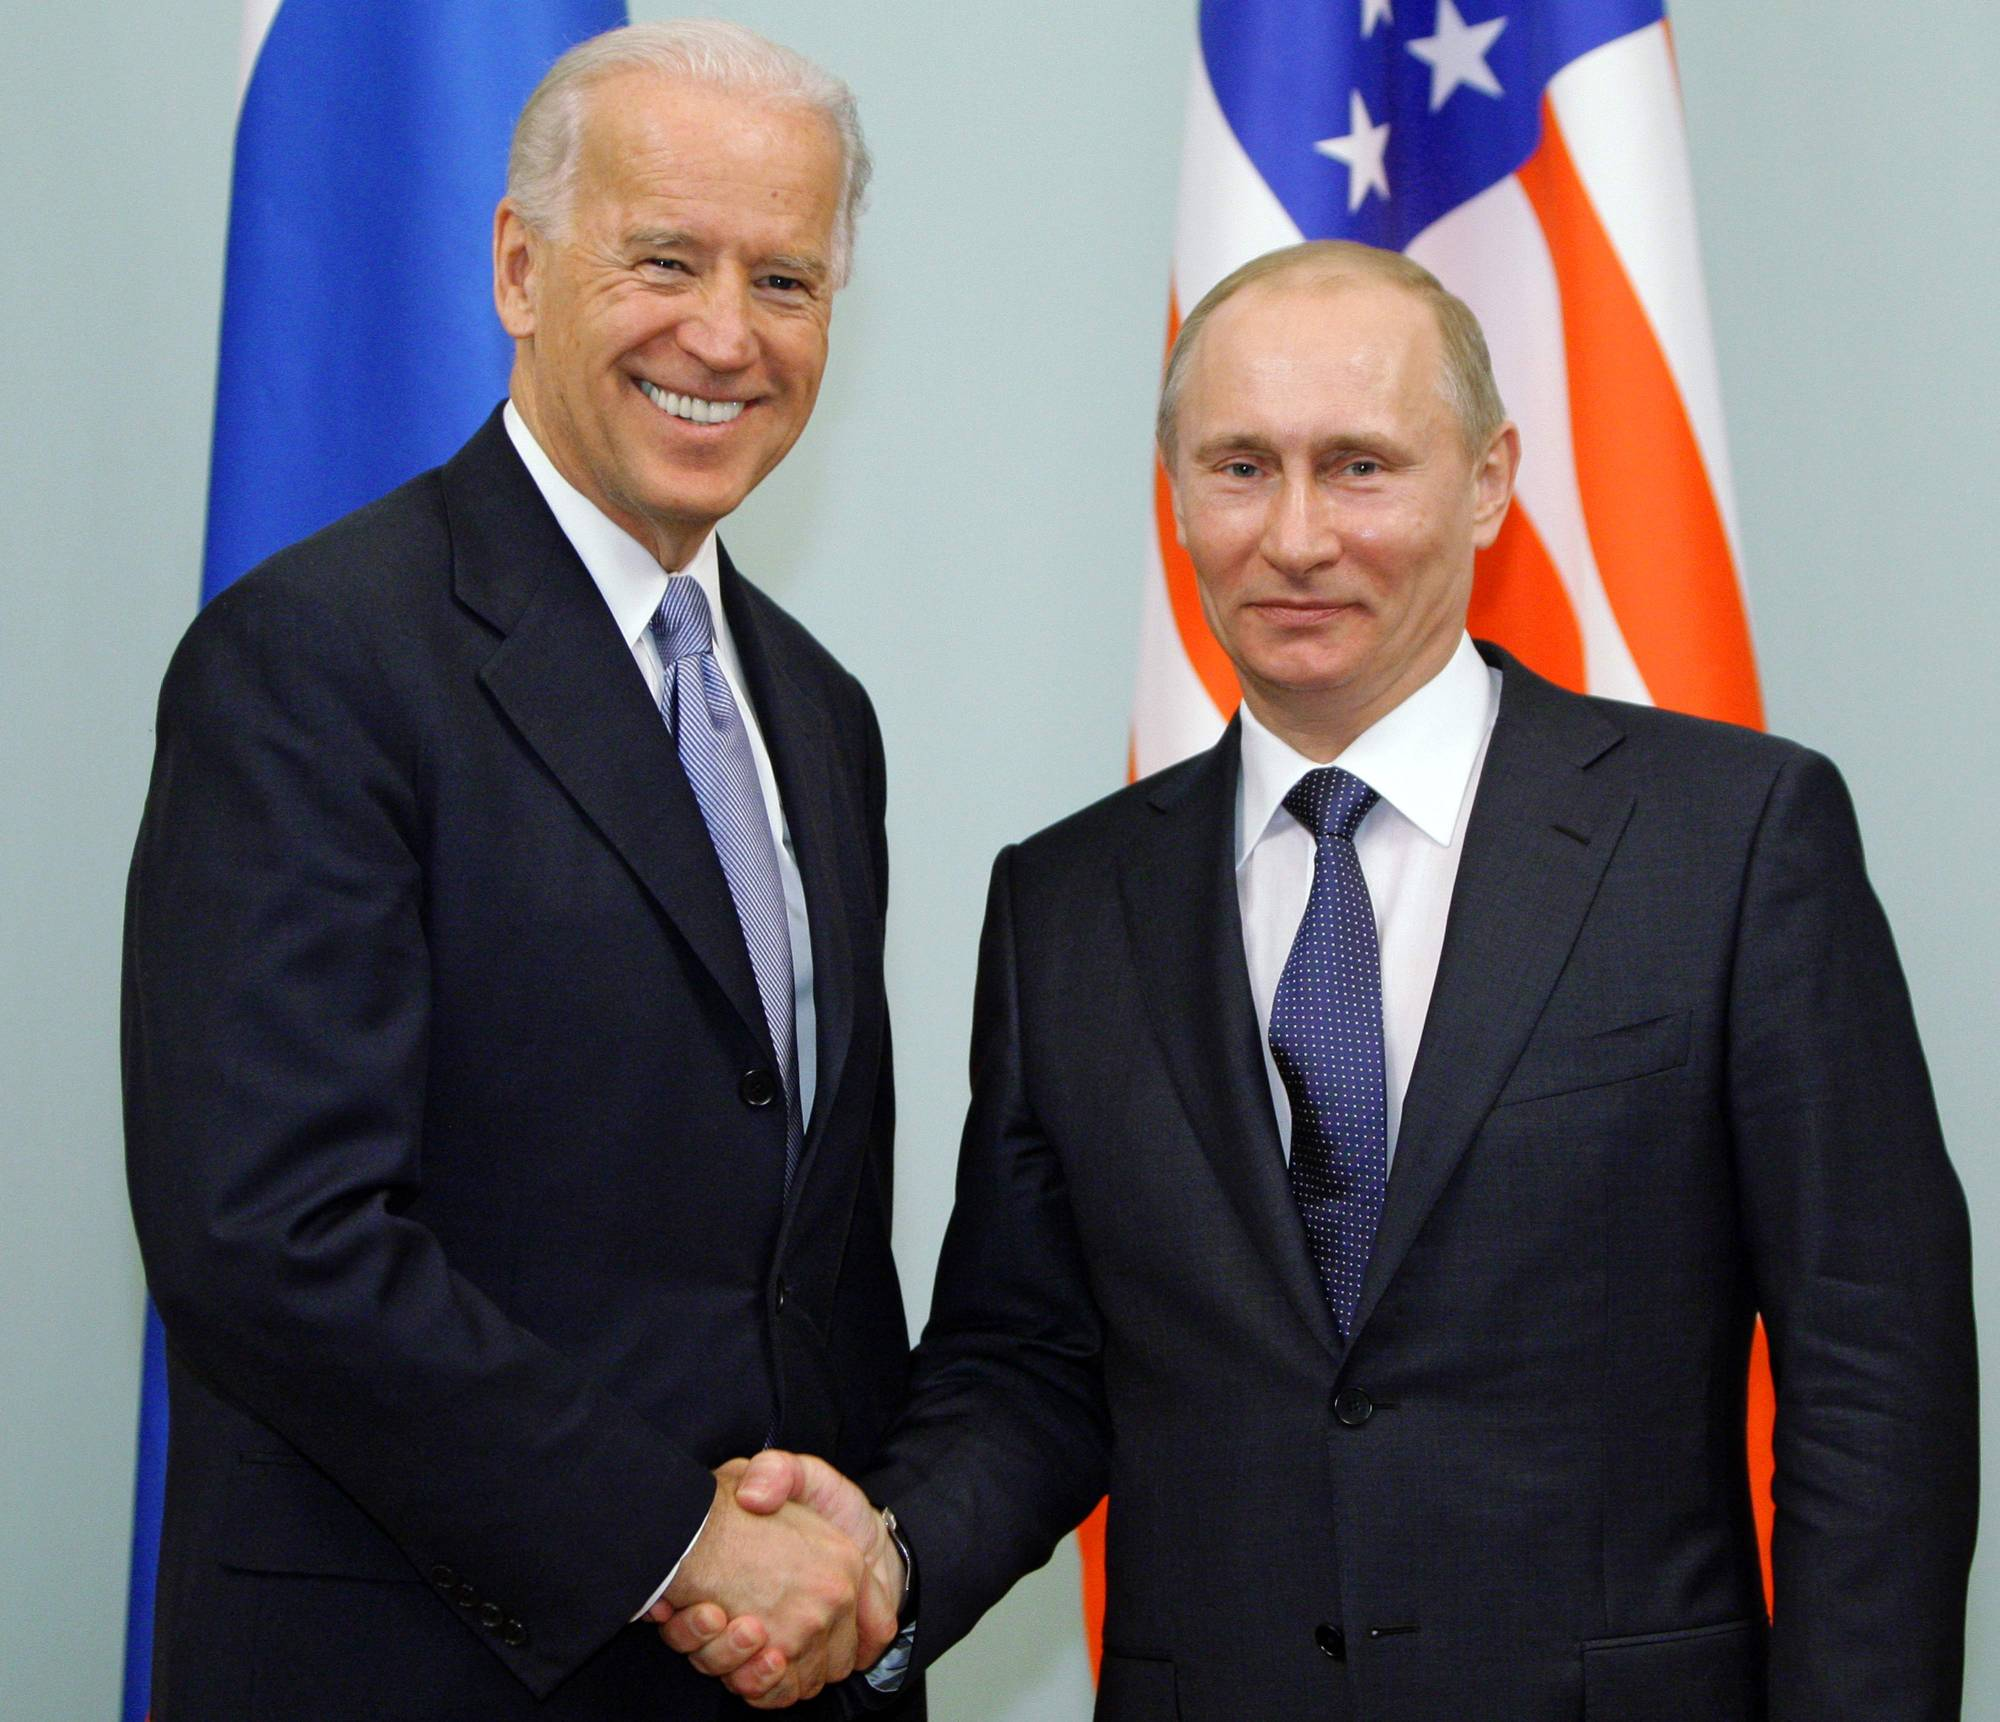 U.S. President Joe Biden and President Vladimir Putin of Russia, pictured in 2011, formally agreed to extend the last remaining nuclear arms treaty between their countries on Tuesday. | POOL / VIA AFP-JIJI